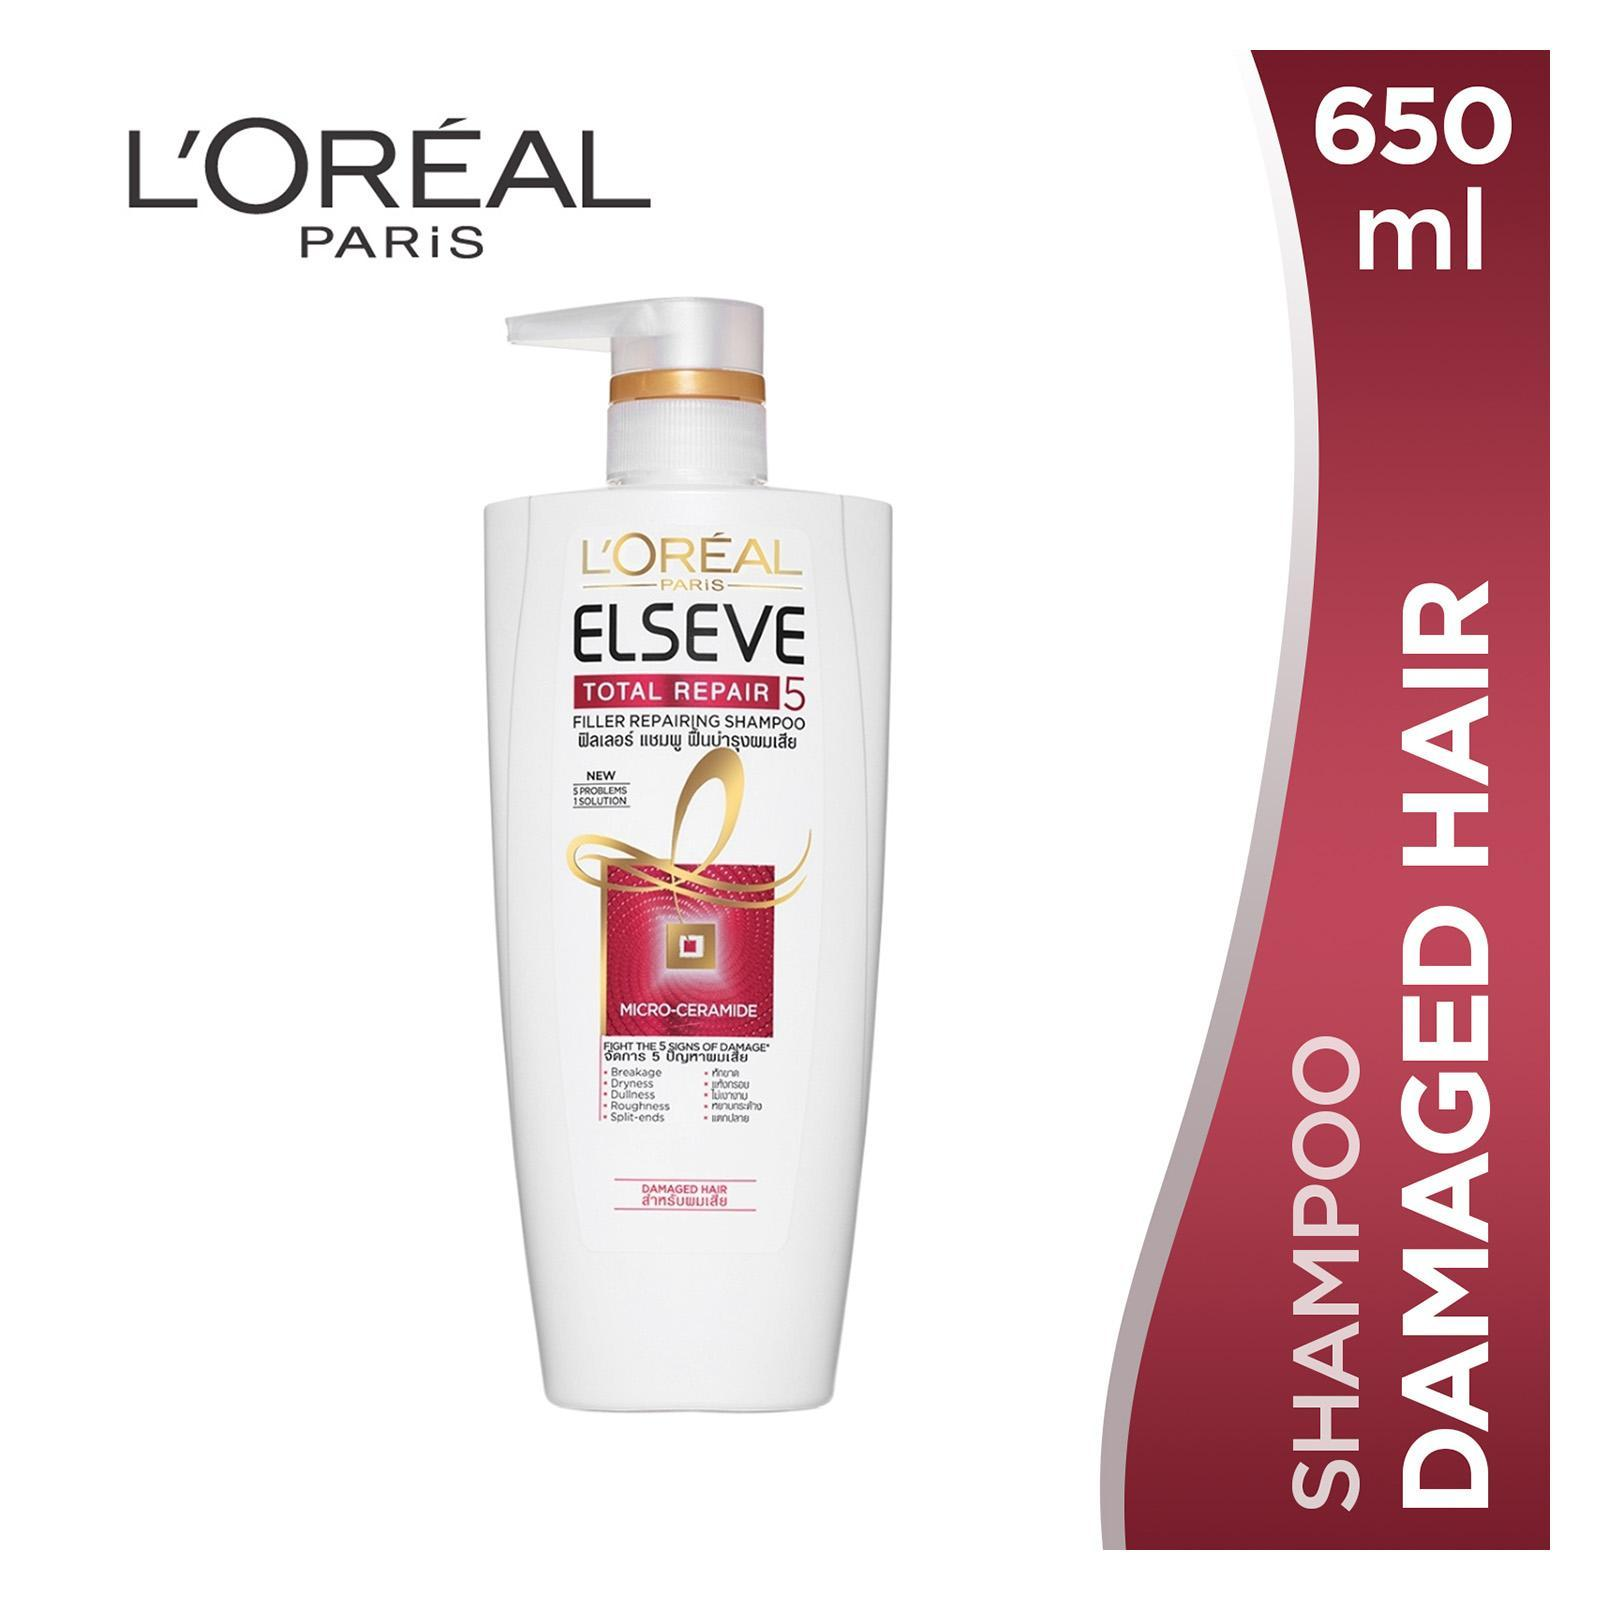 L'Oreal Paris Elseve Total Repair 5 Repairing Shampoo